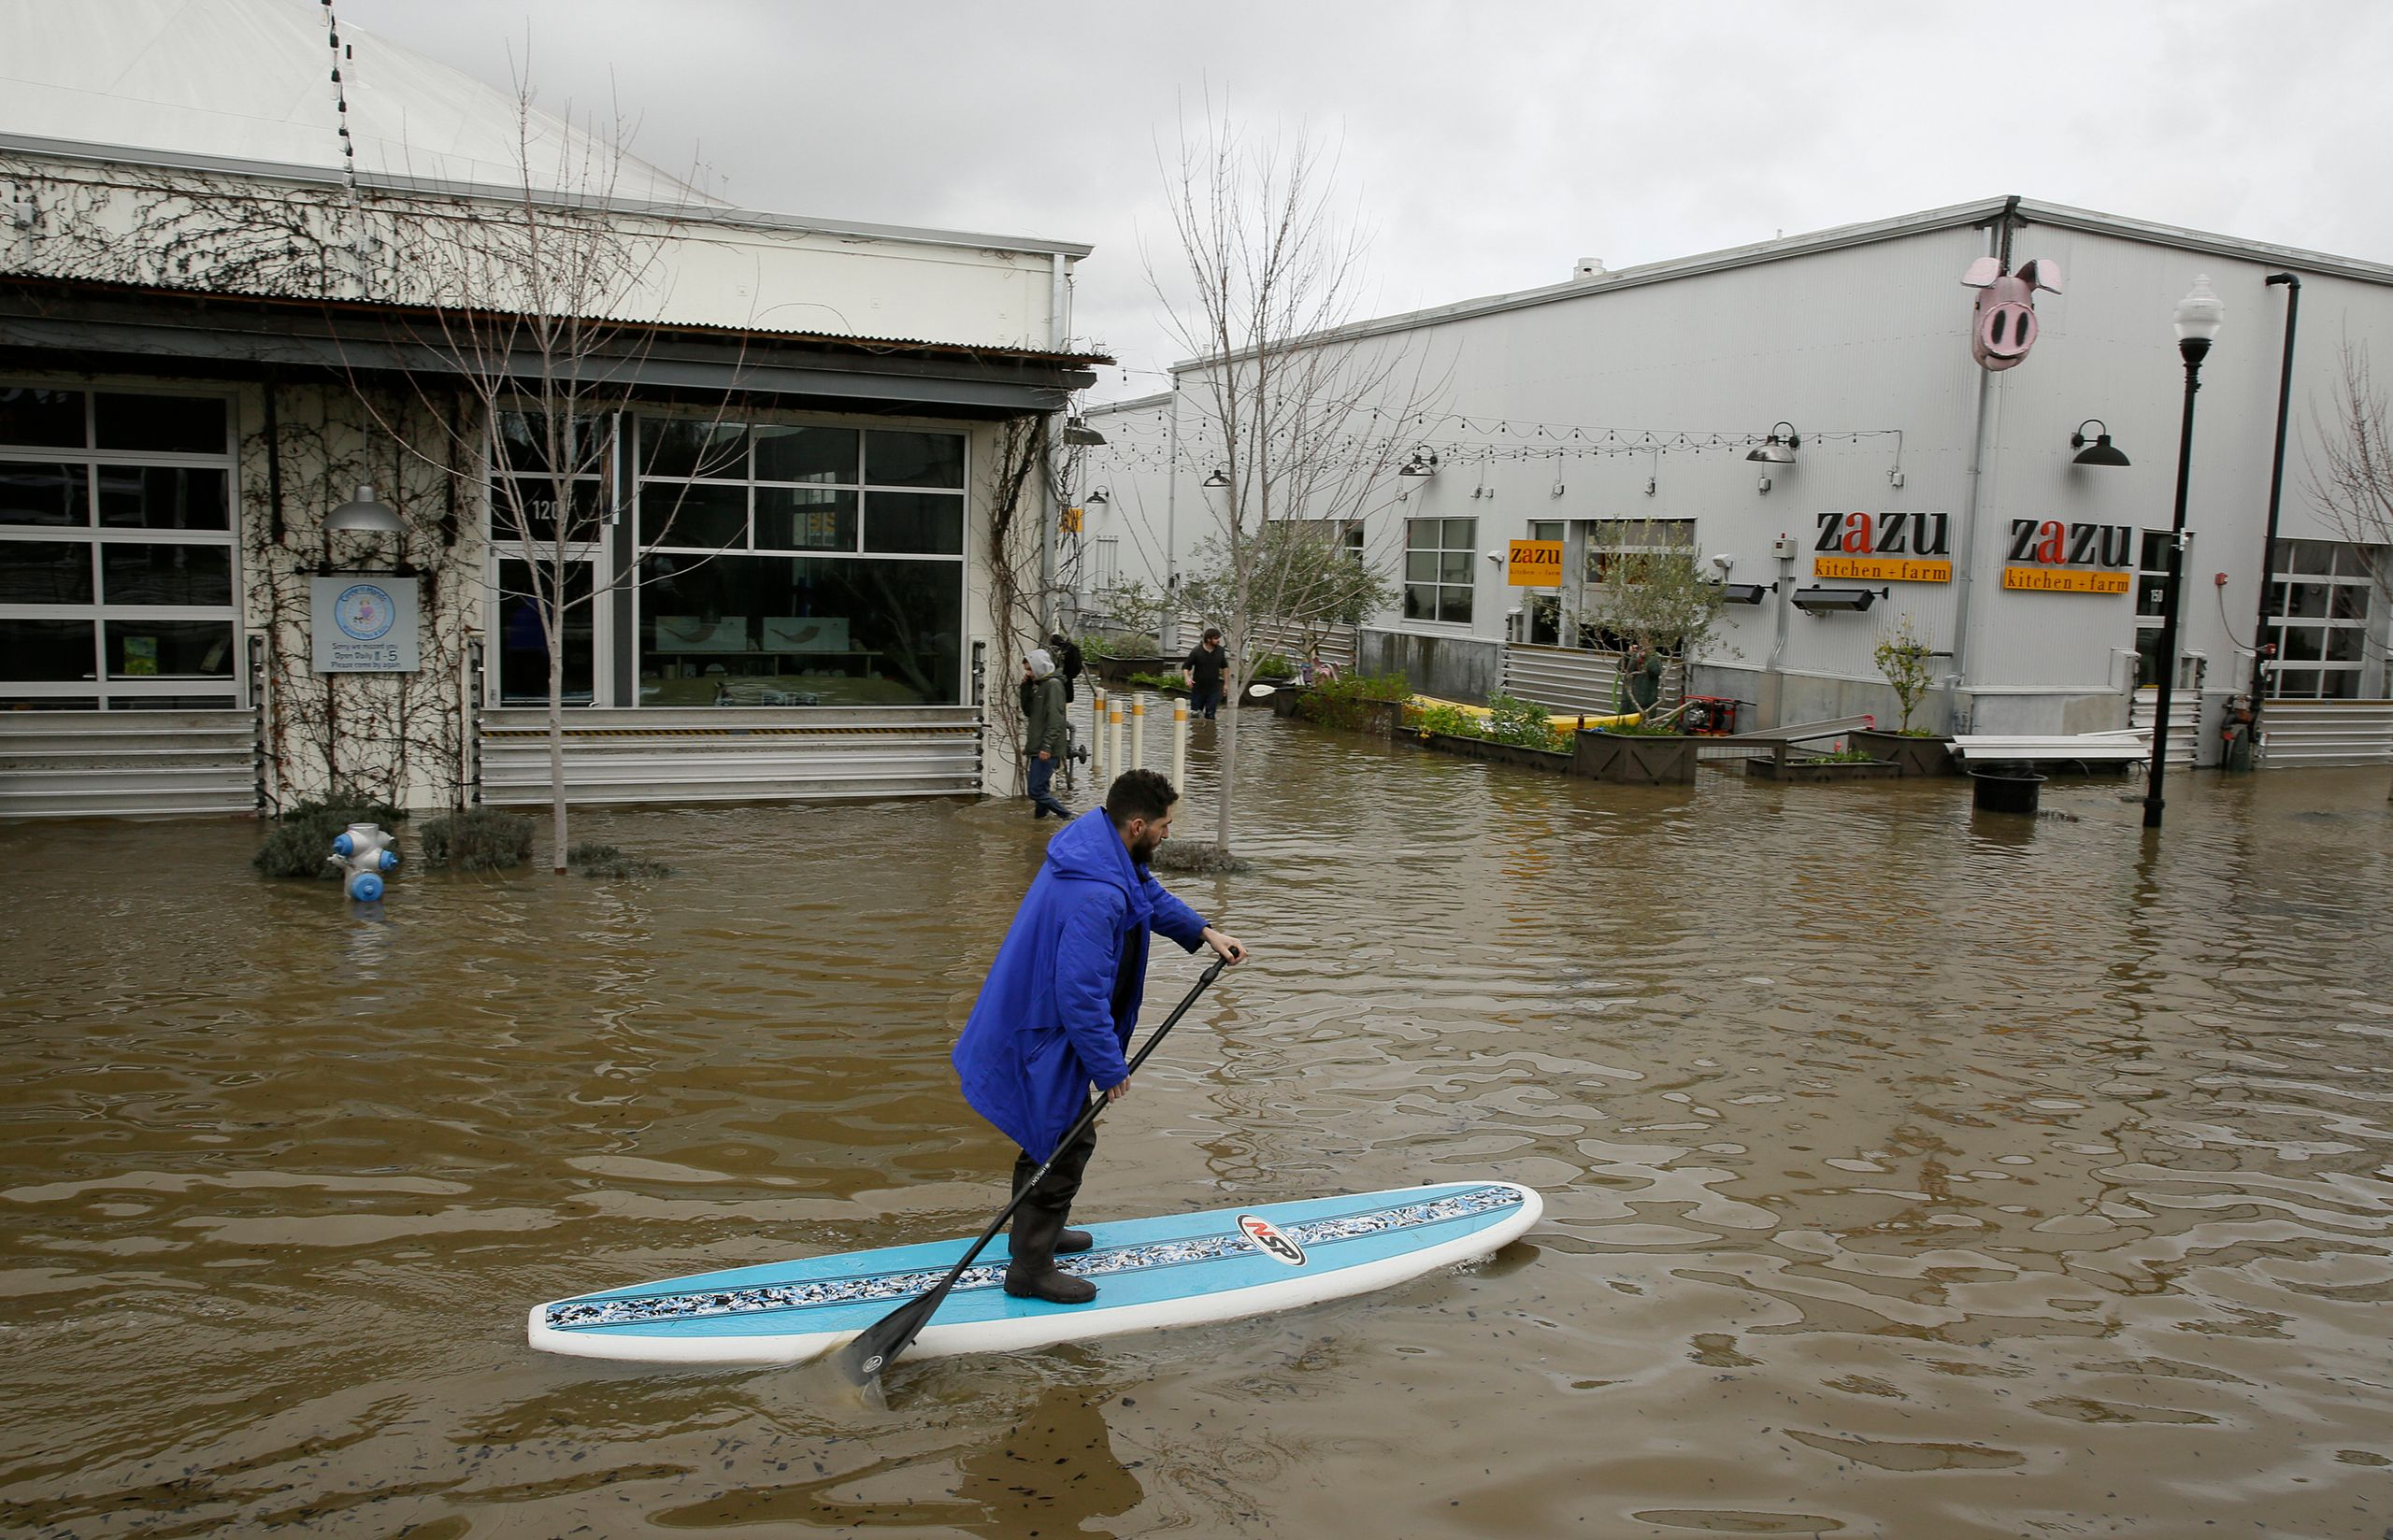 A man uses a paddleboard to make his way through the flooded Barlow Market District on Feb. 27, 2019, in Sebastopol, Californ